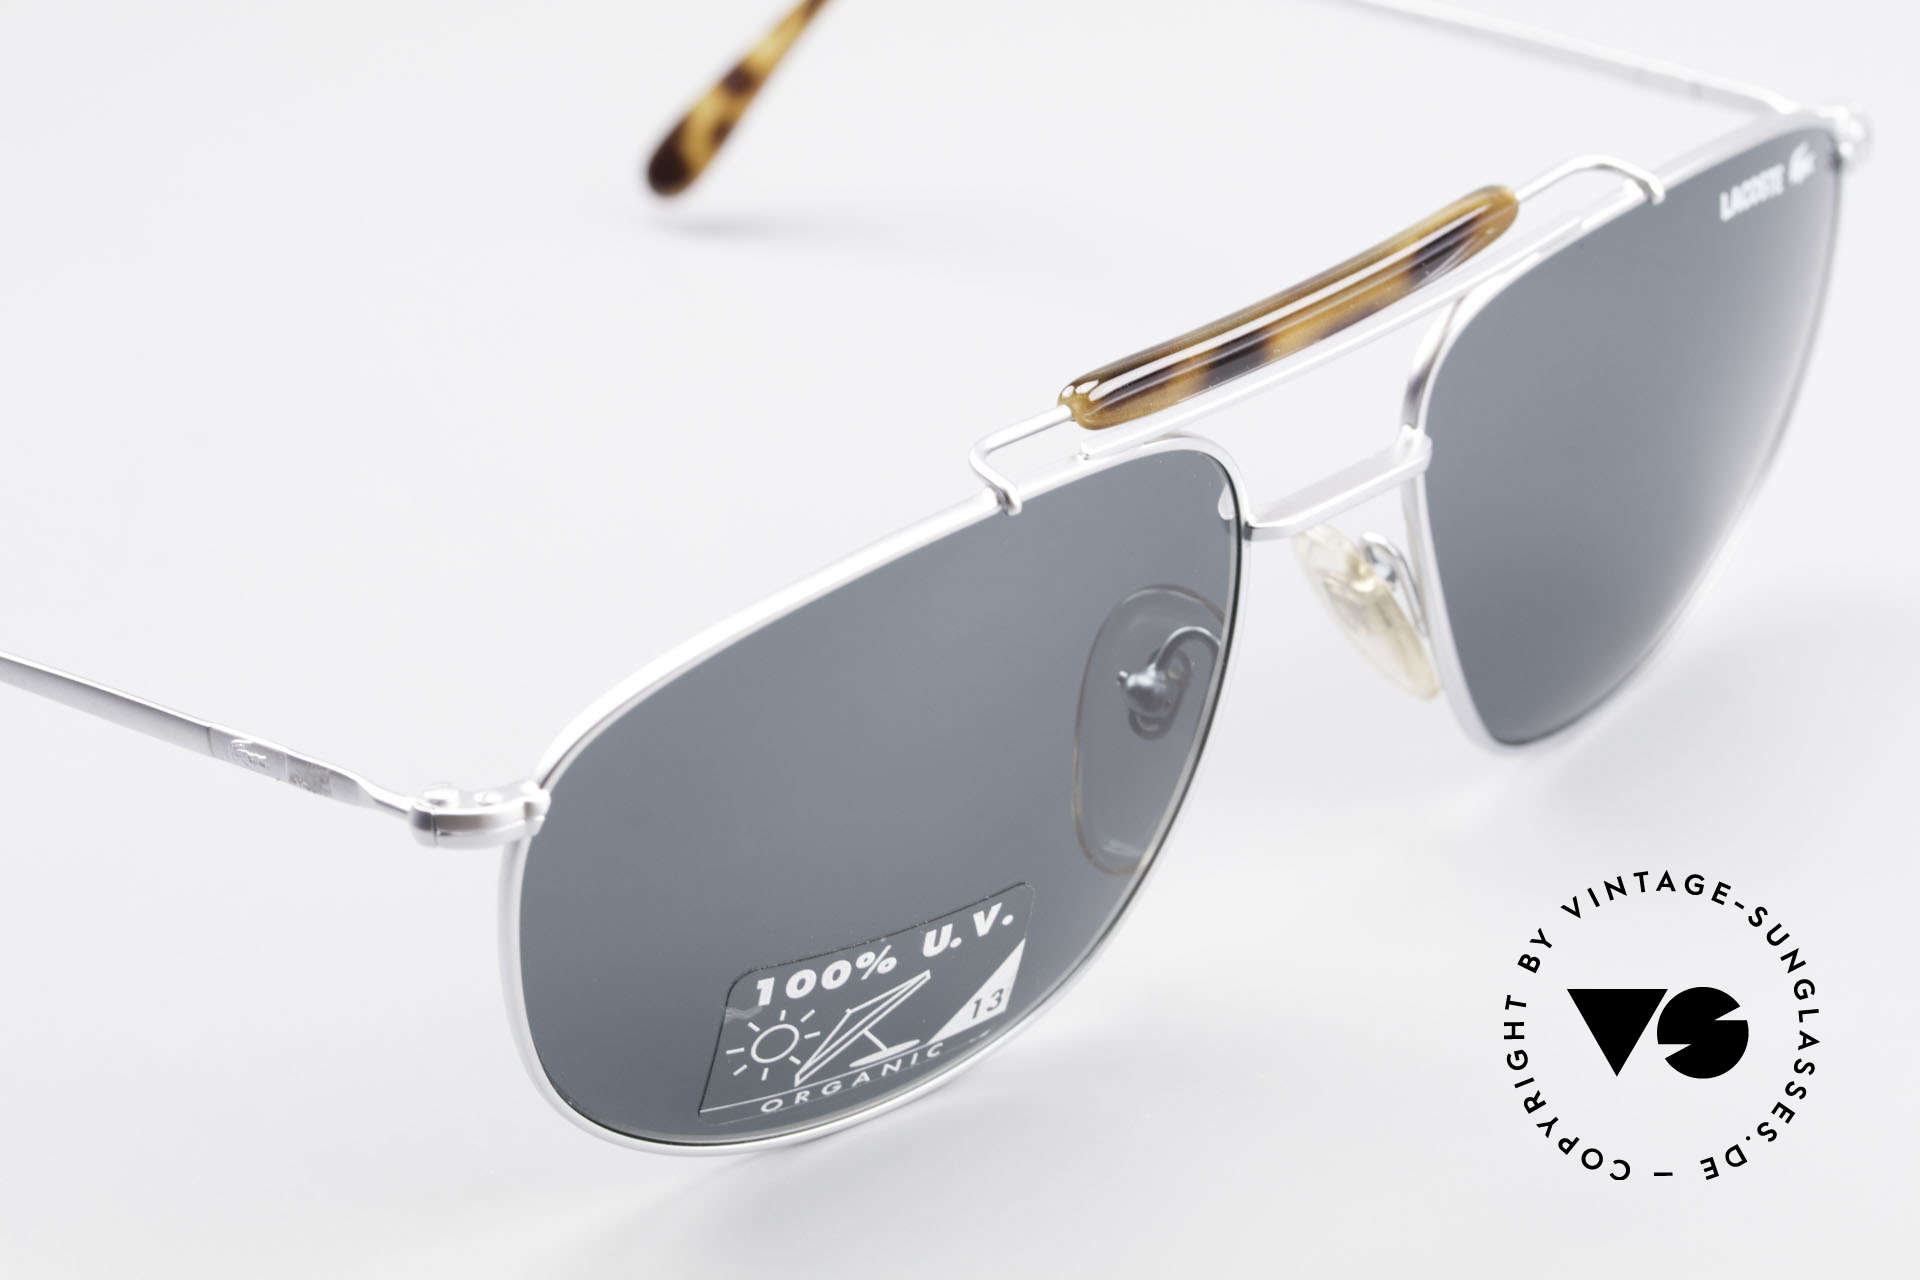 Lacoste 149 Titanium Sports Sunglasses, unworn (like all our vintage Lacoste sunglasses), Made for Men